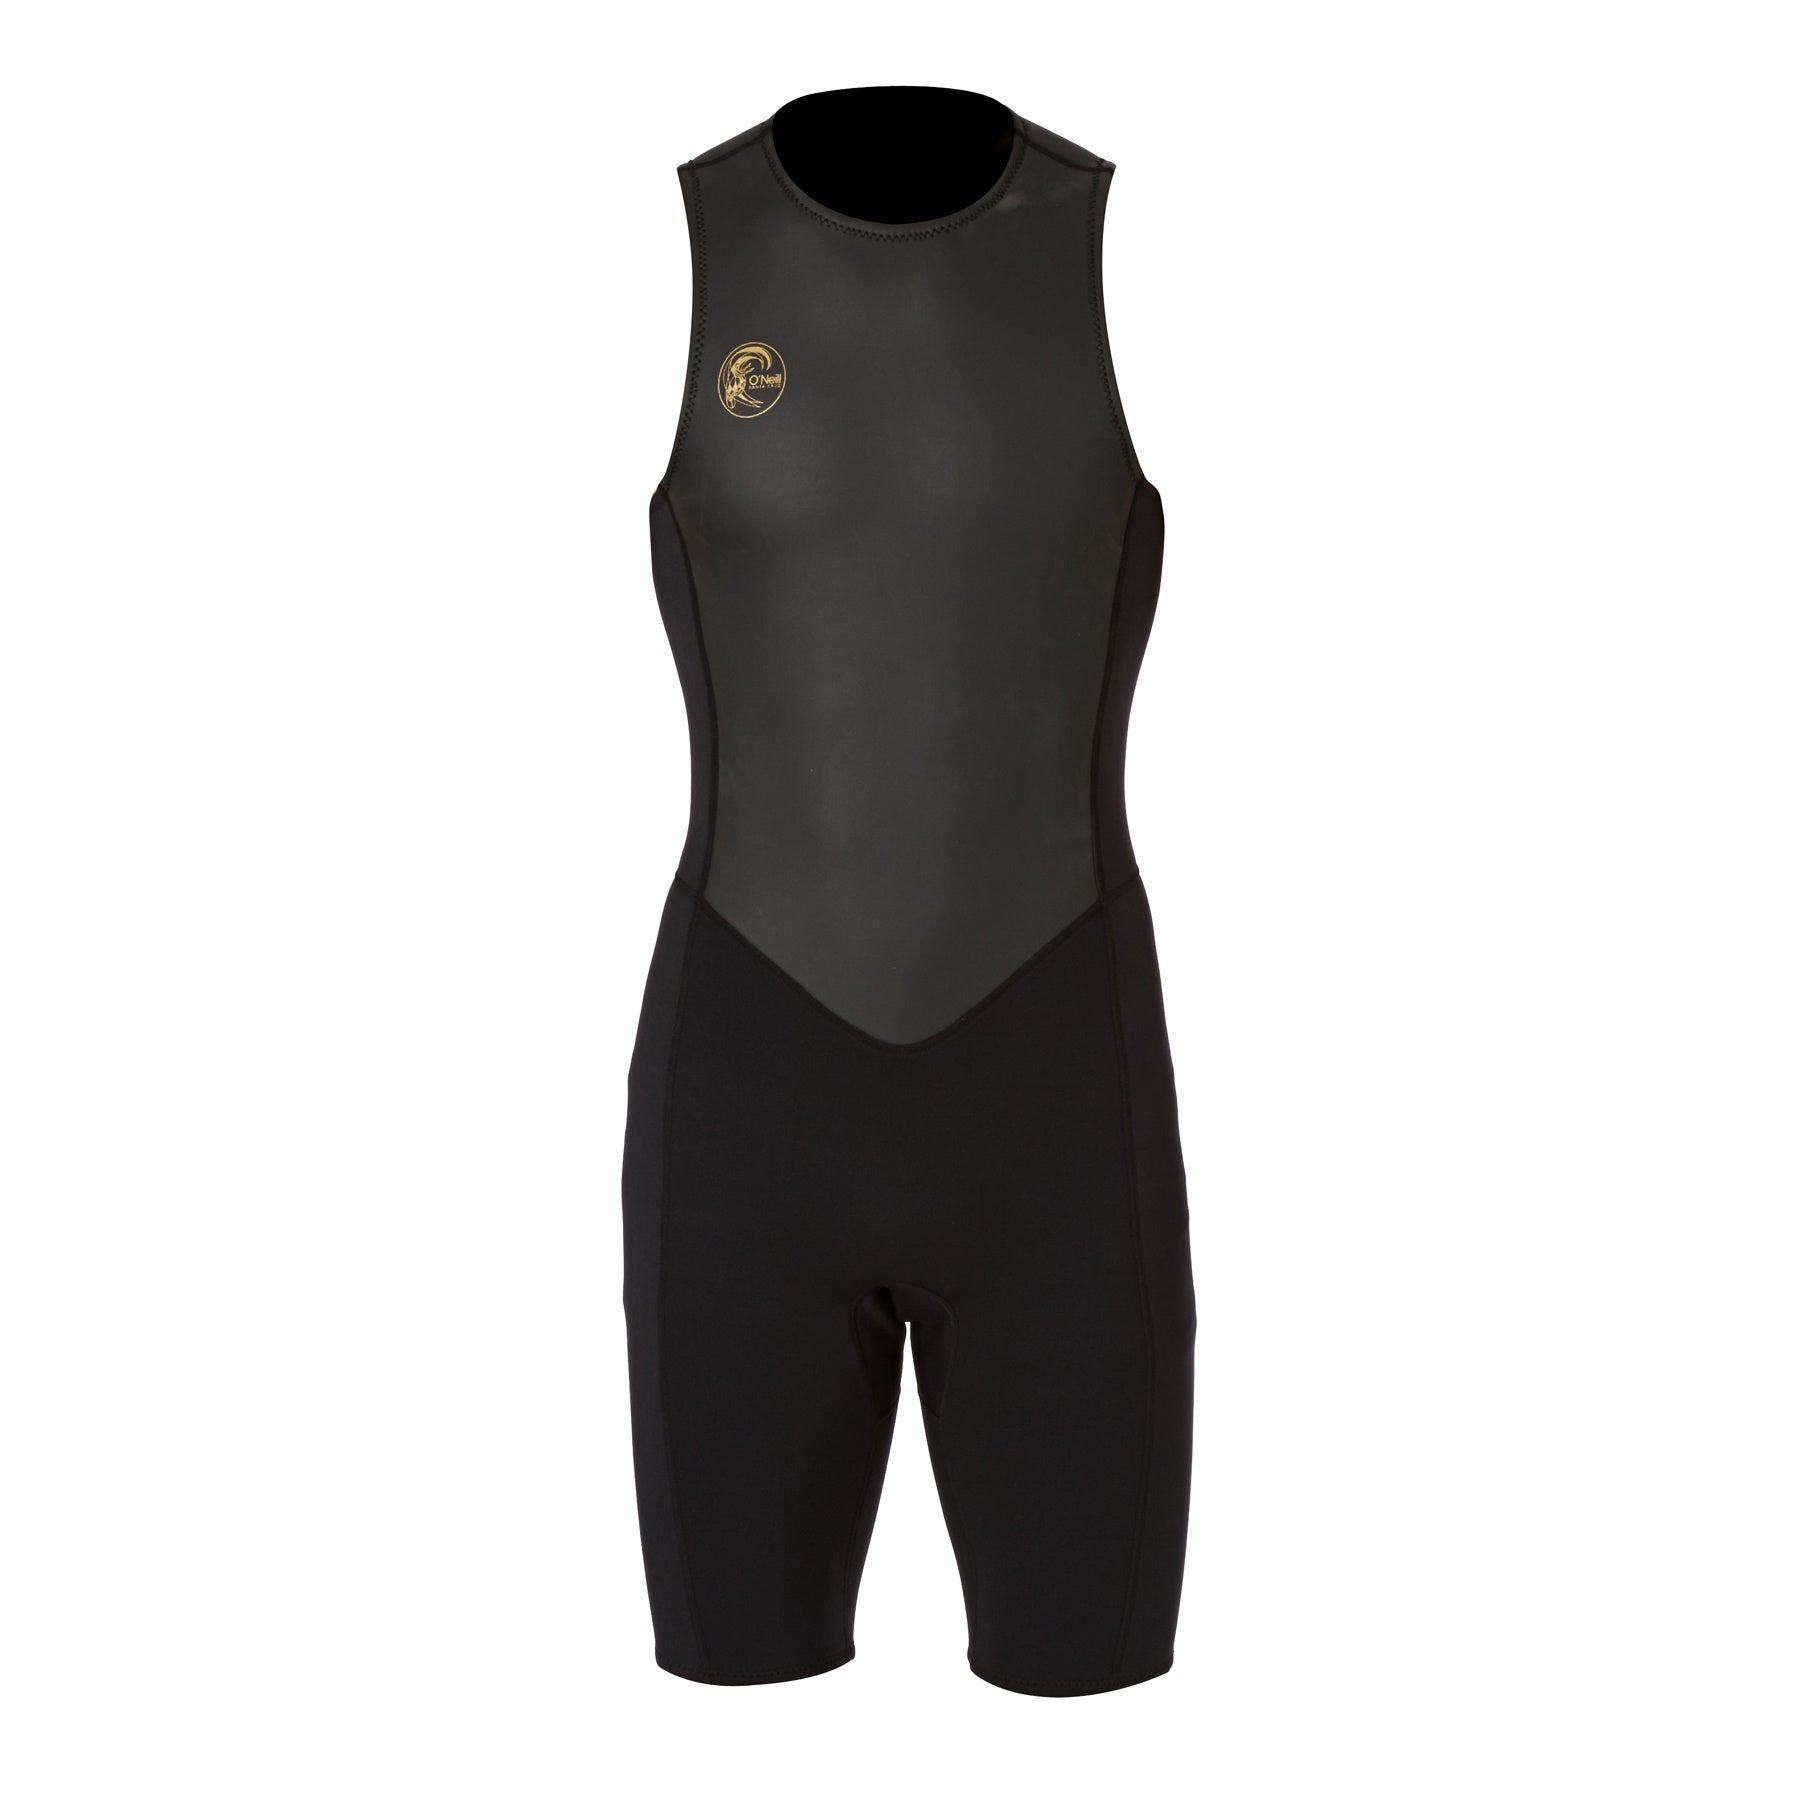 O Neill O'riginal 2mm Short John Back Zip Wetsuit - Black